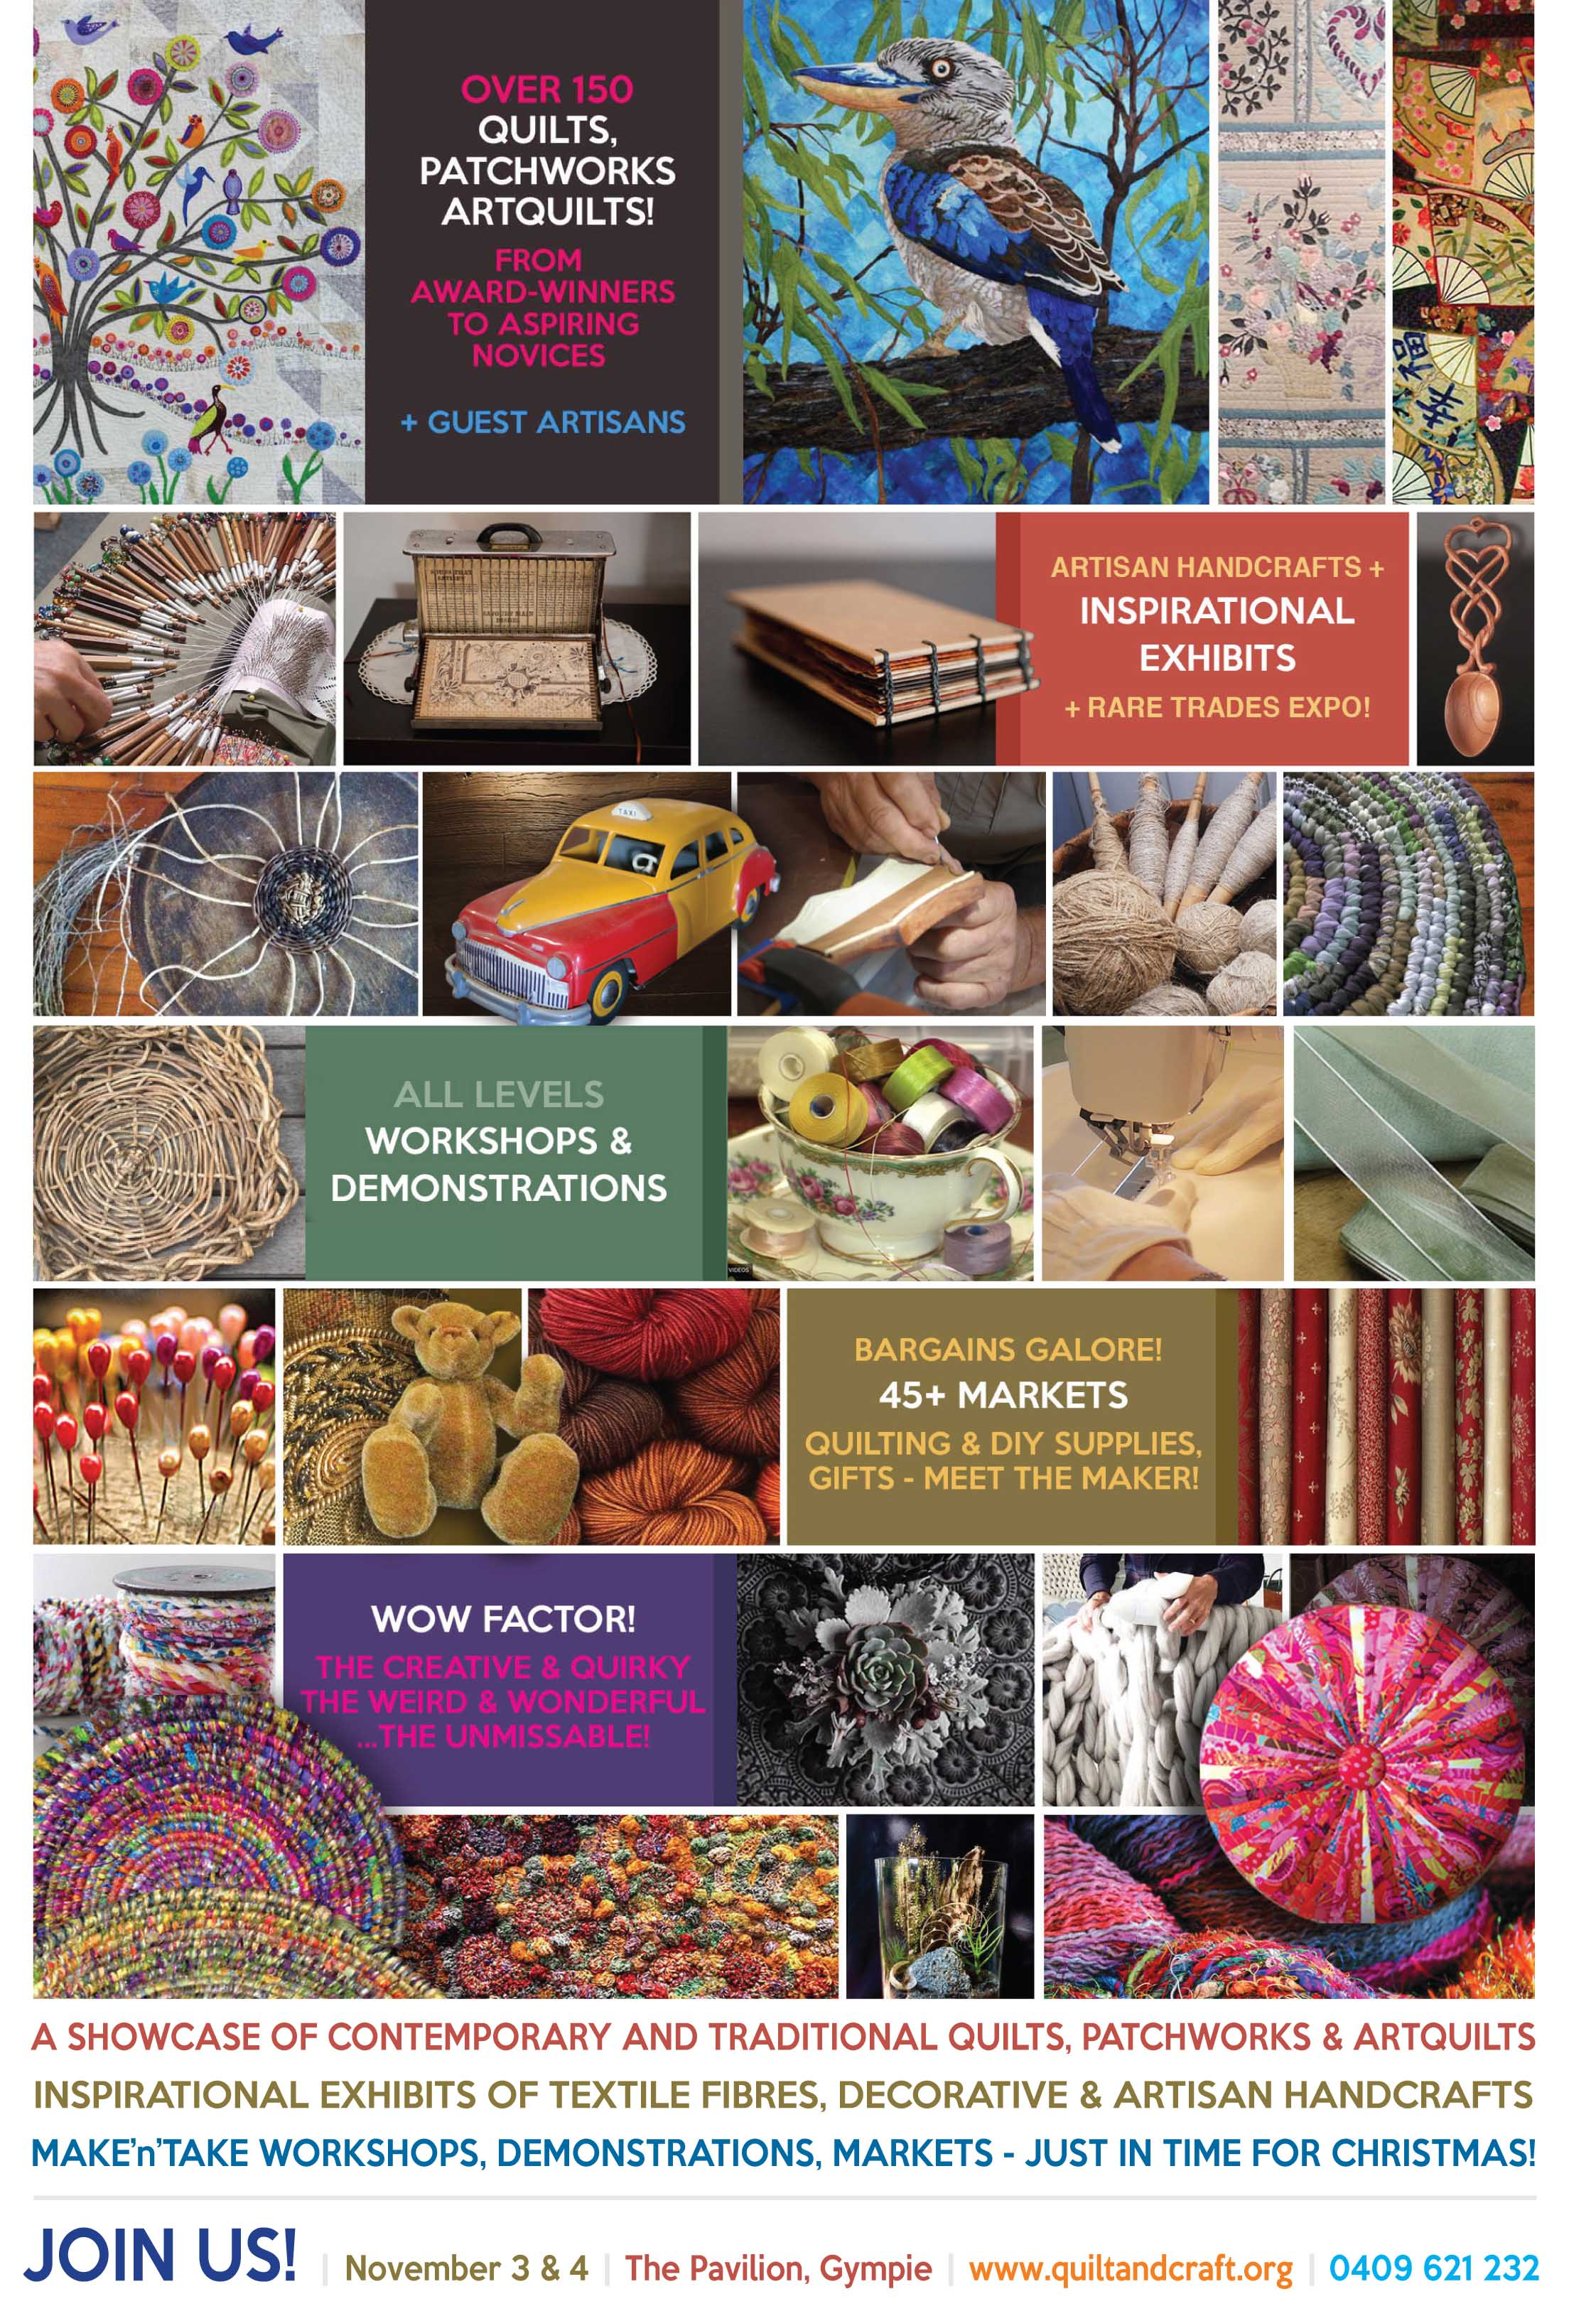 Quilts patchwork artquilts art love craft spinning exhibits